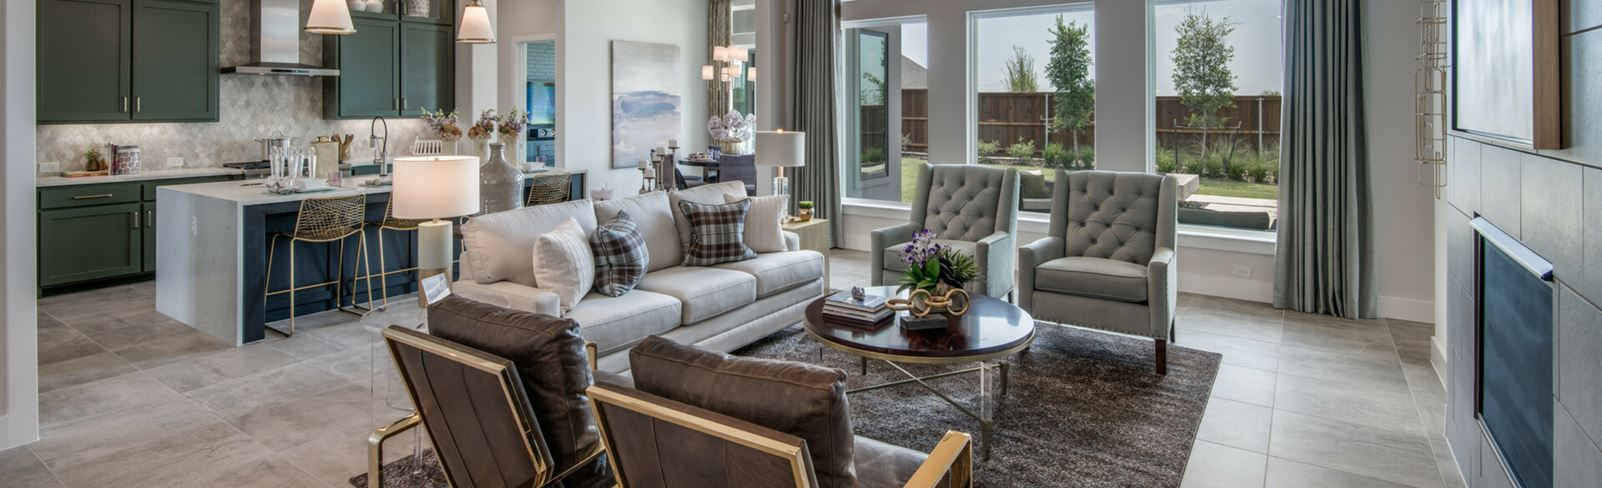 Southgate Homes family room | The Grove Frisco